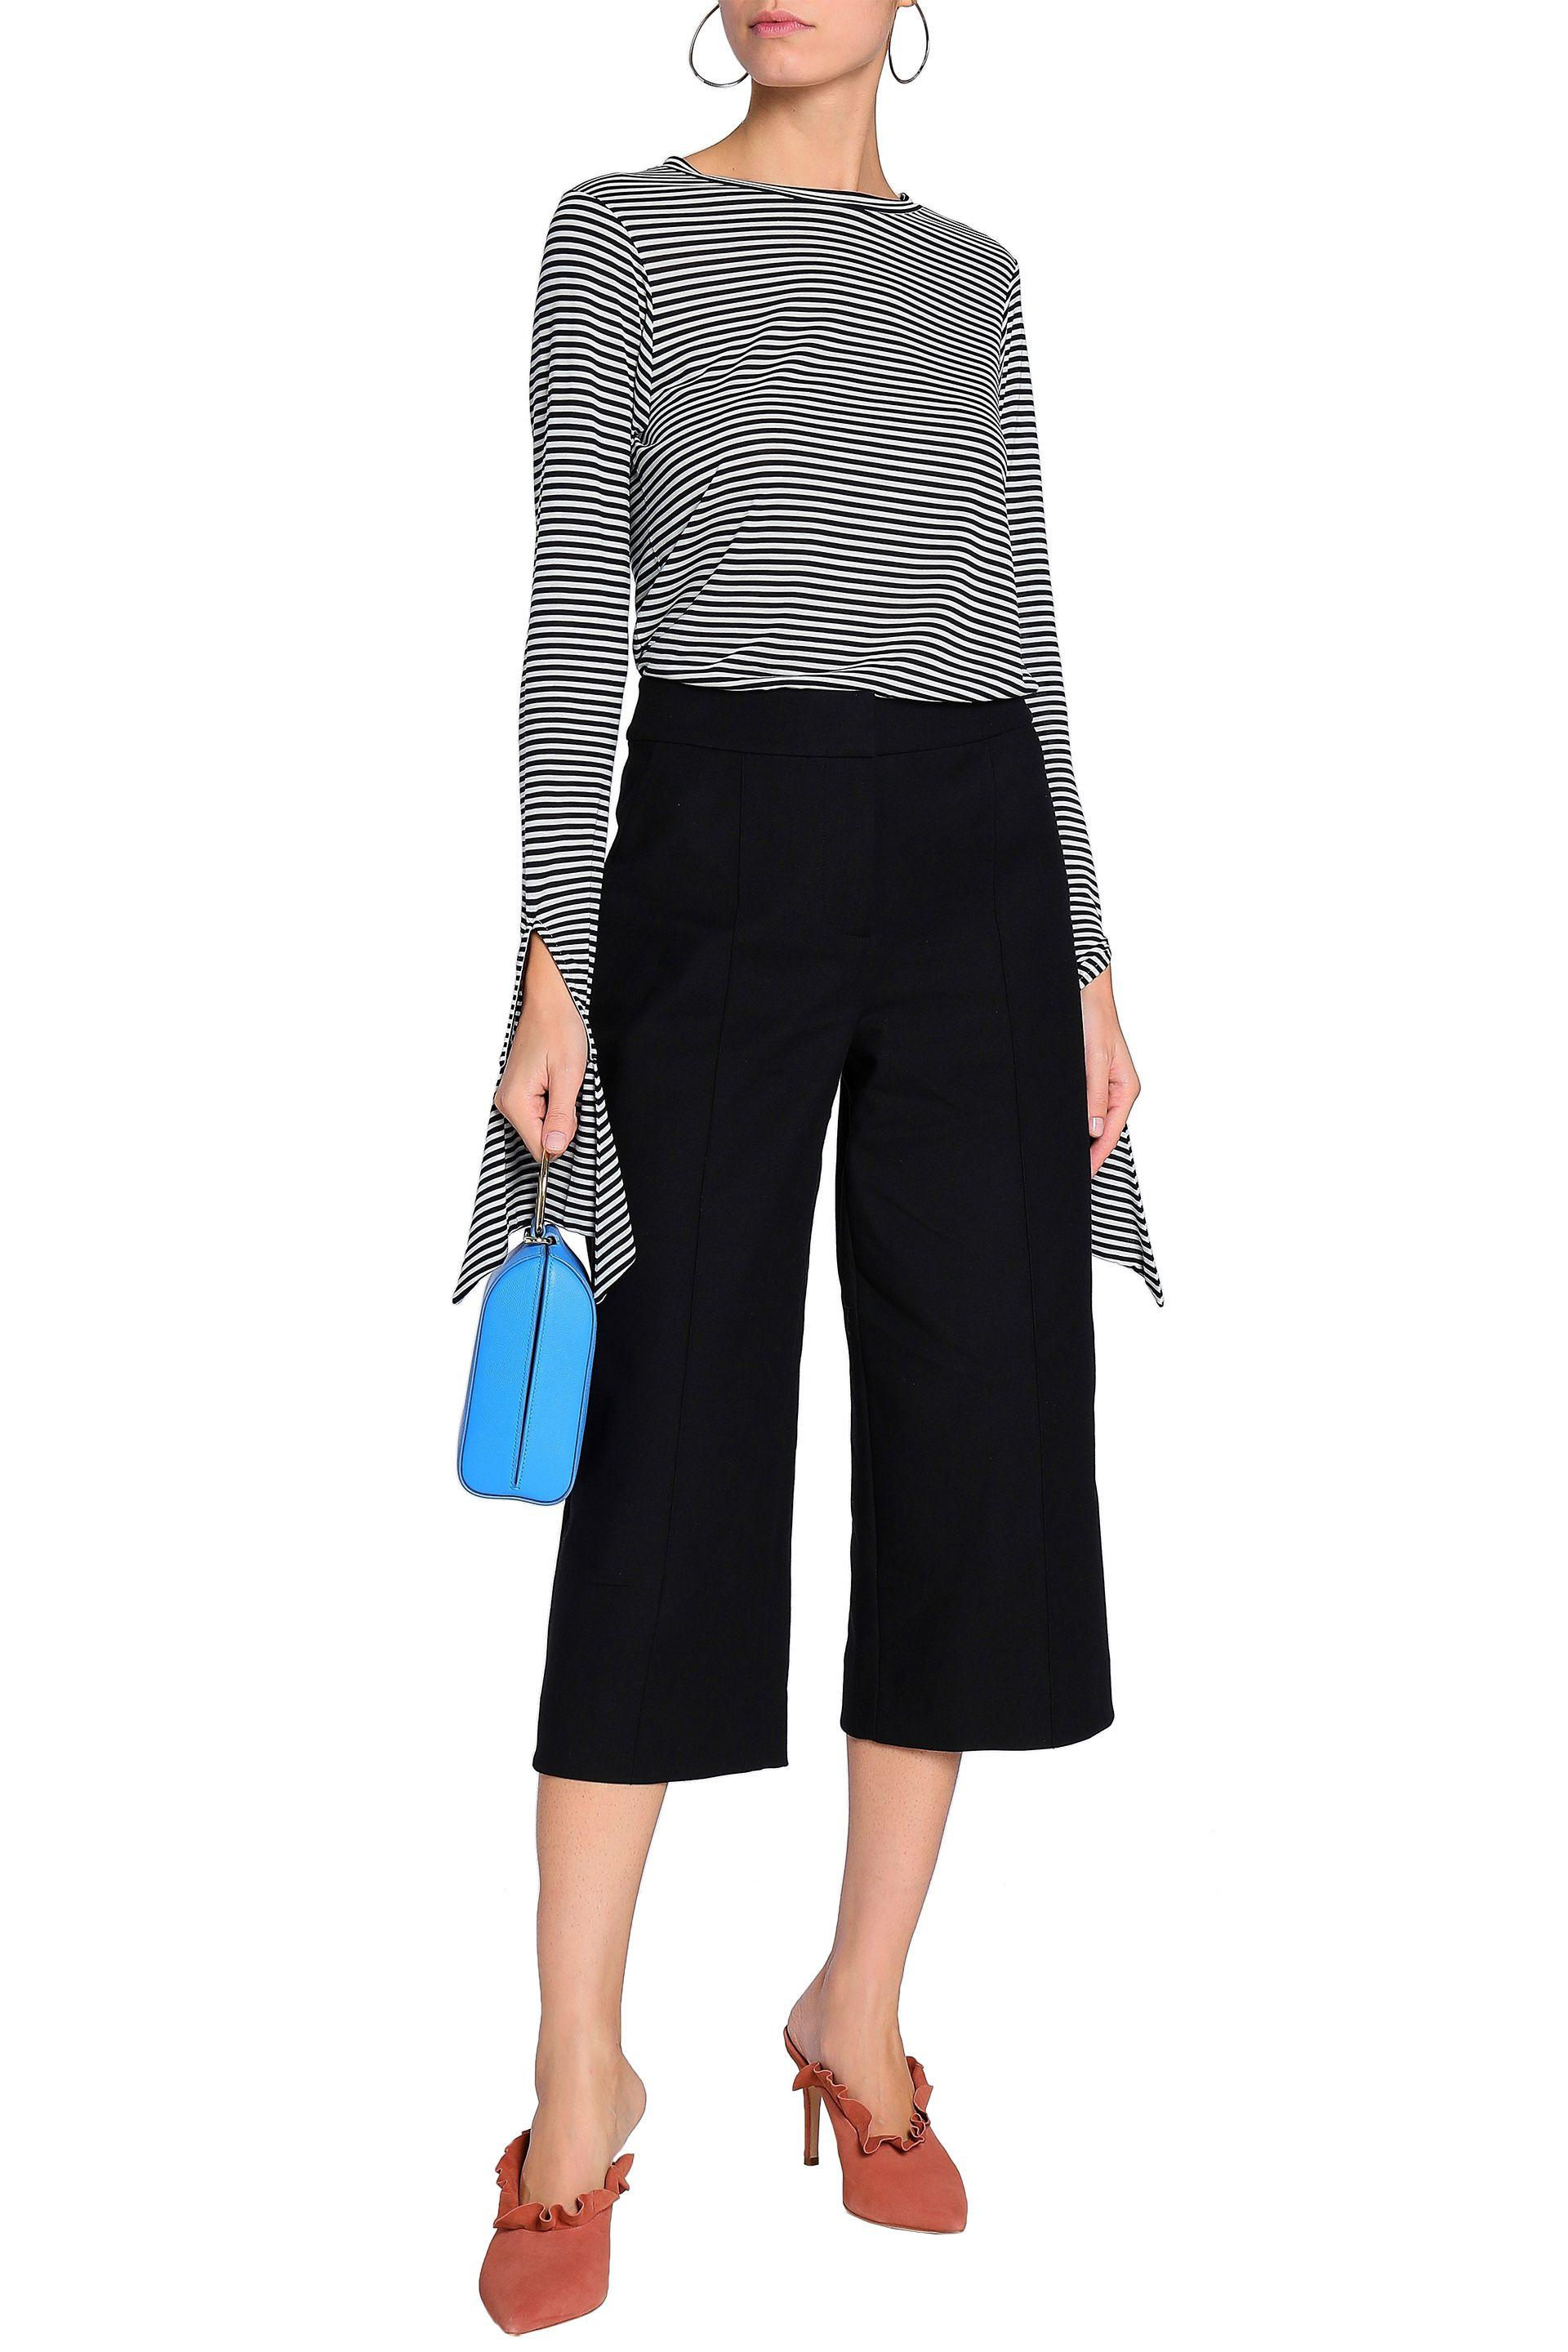 4065de56d4ee4 Kate Spade Woman Rambling Roses Cotton-blend Twill Culottes Black in ...